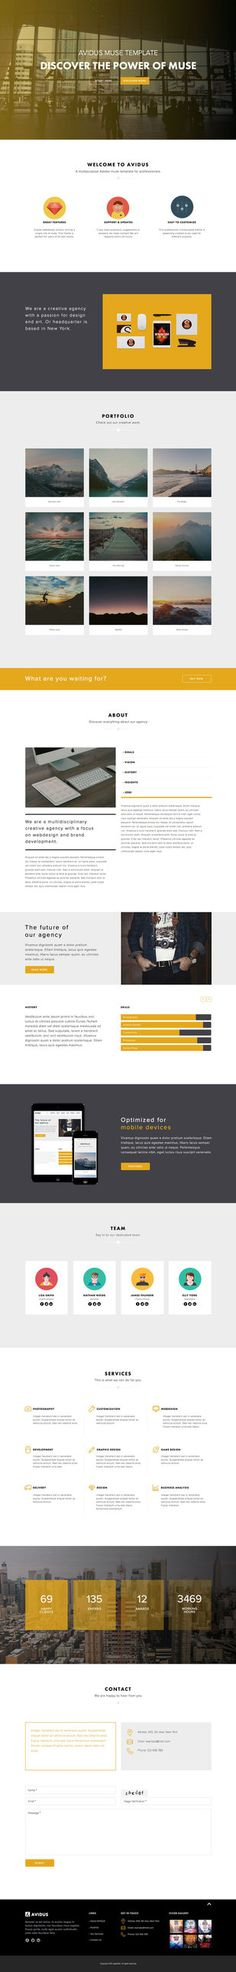 Free Adobe Muse Template by Peter Spencer - Dribbble